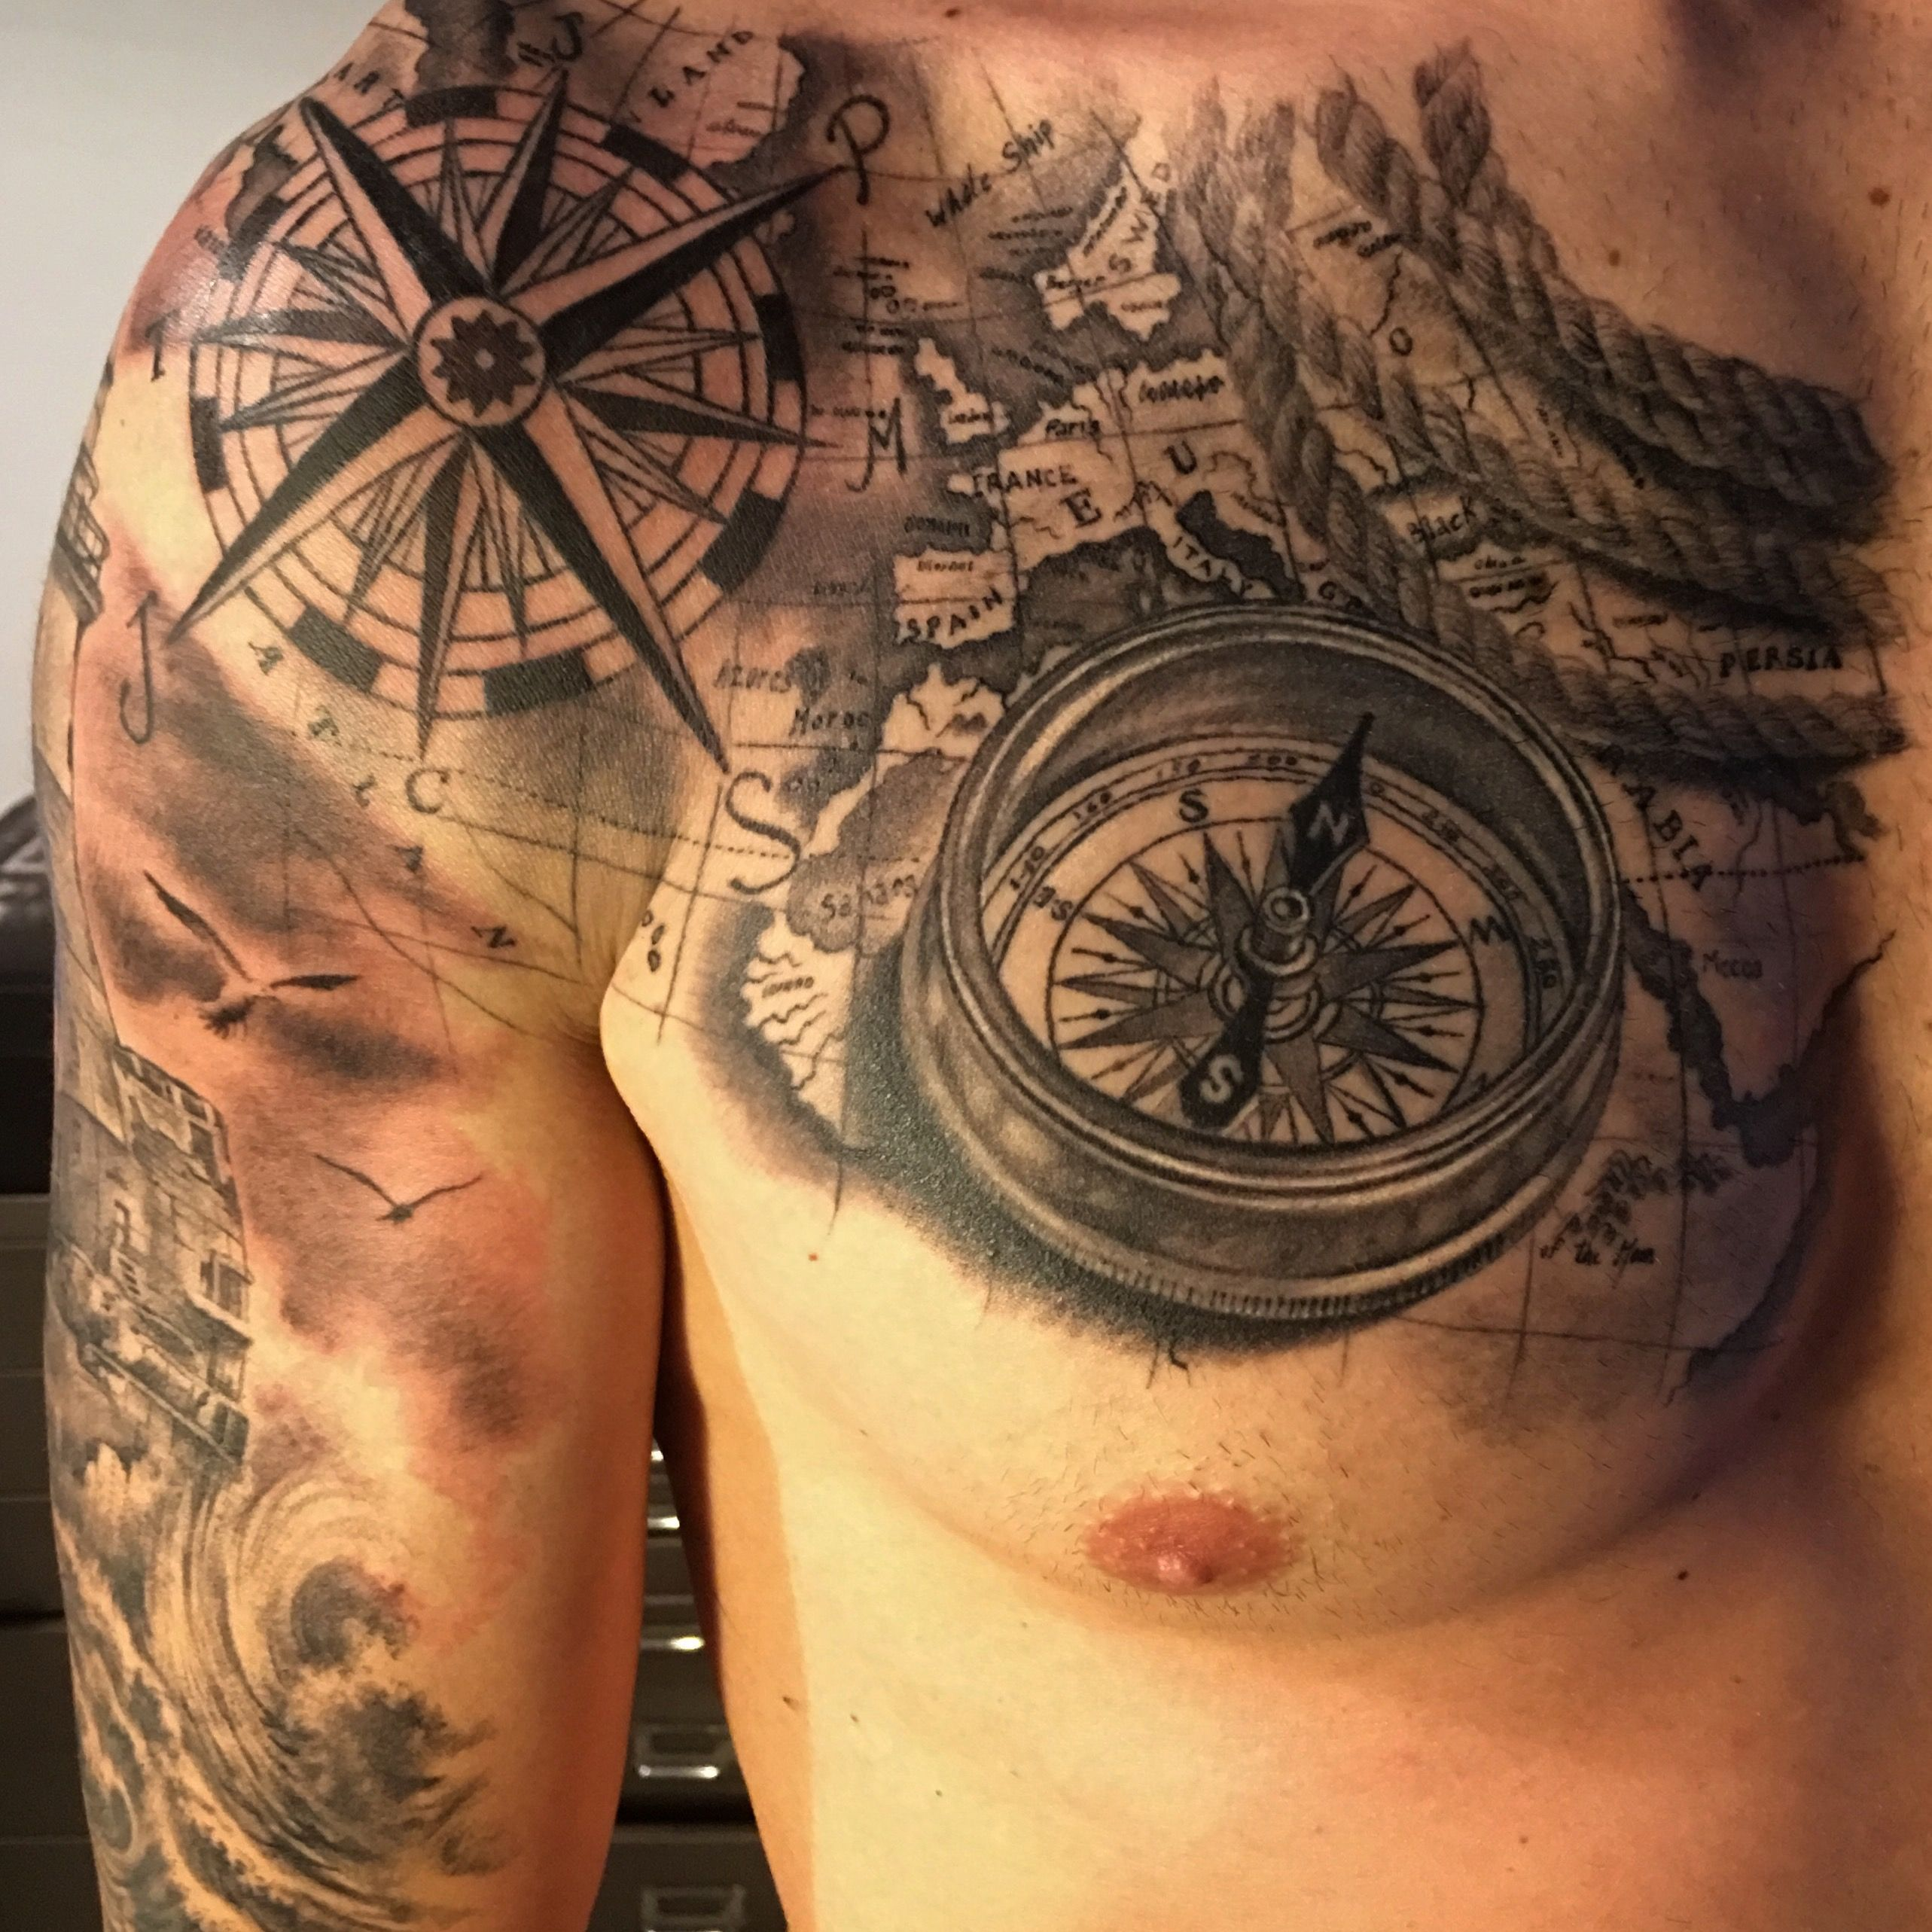 Rsultat de recherche dimages pour tatouage epauliere tatto cooltop tattoo trends compass map tattoo by fabrizio converso gumiabroncs